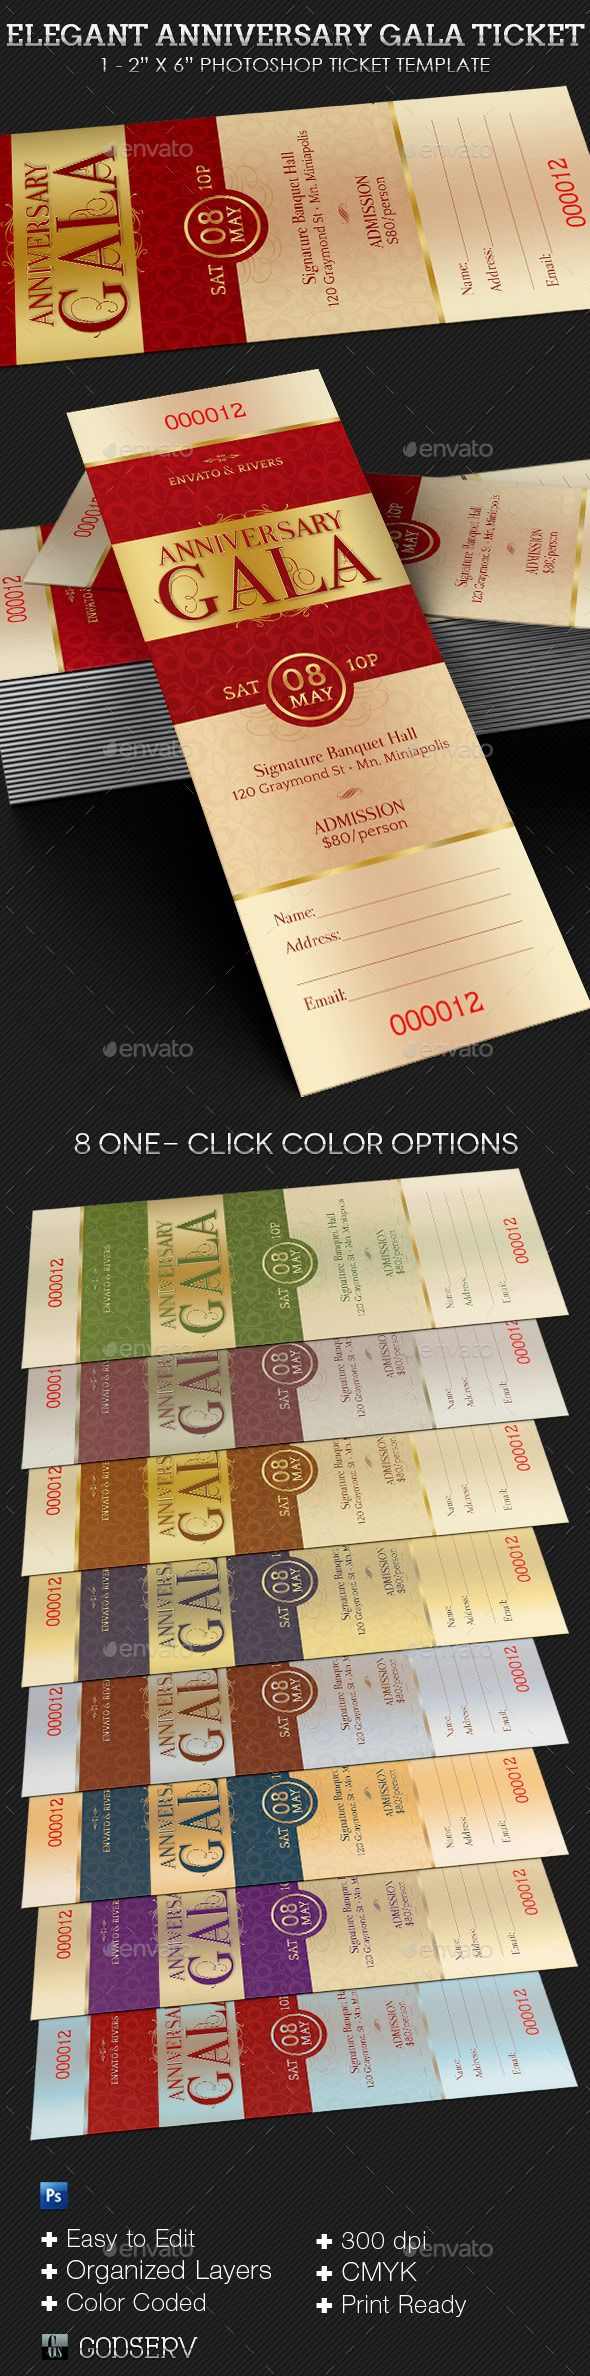 17 best ideas about ticket template my pics elegant anniversary gala ticket template